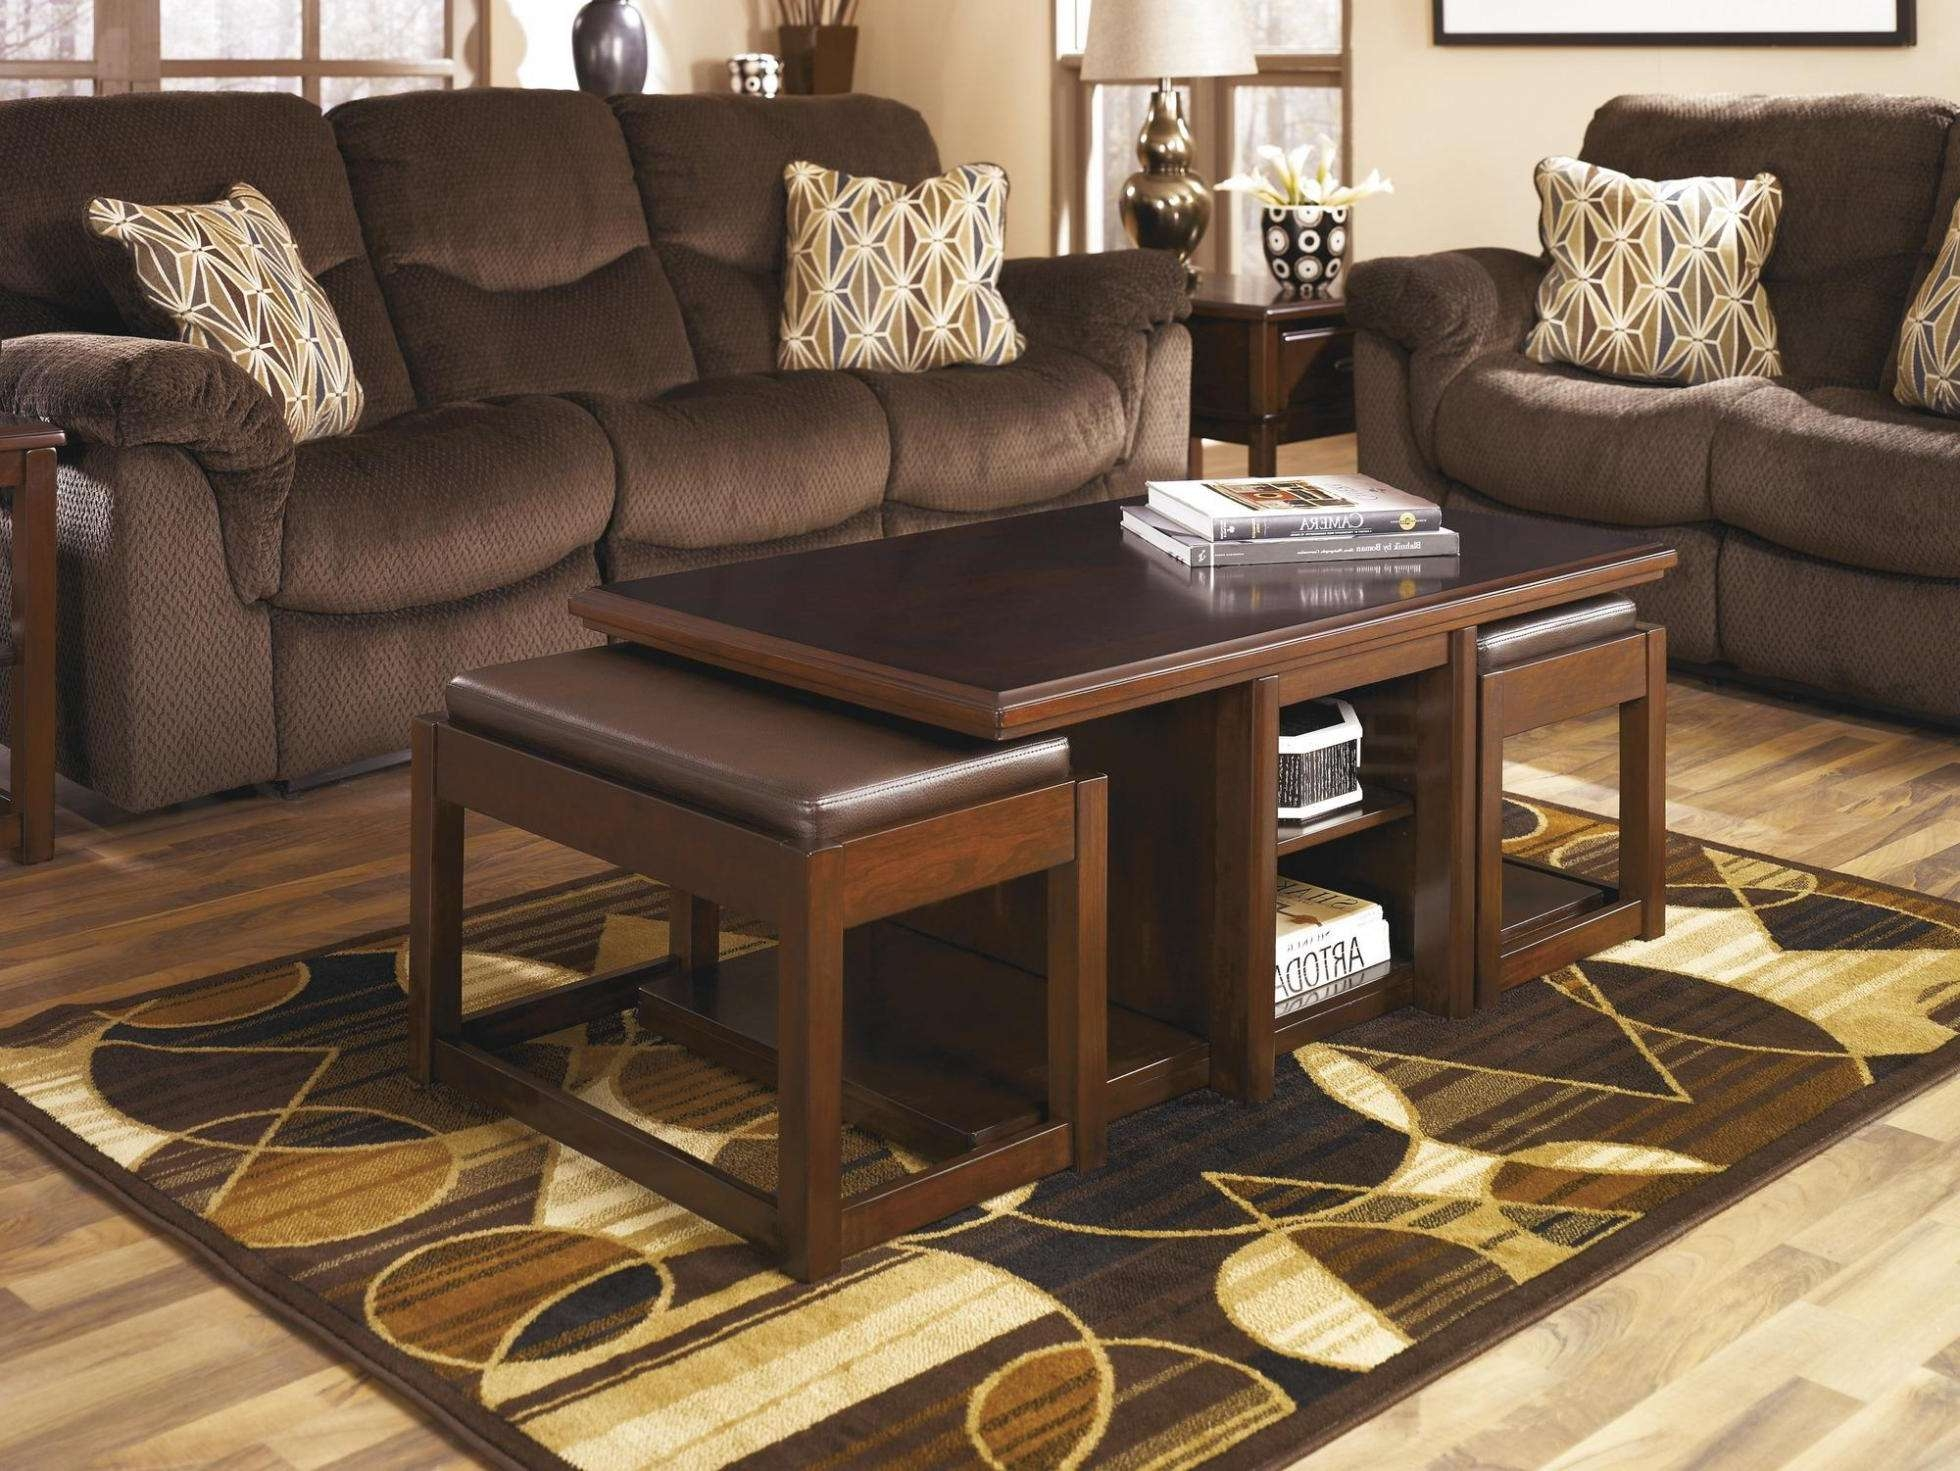 Most Current Coffee Table With Stools Within Furniture (View 10 of 20)